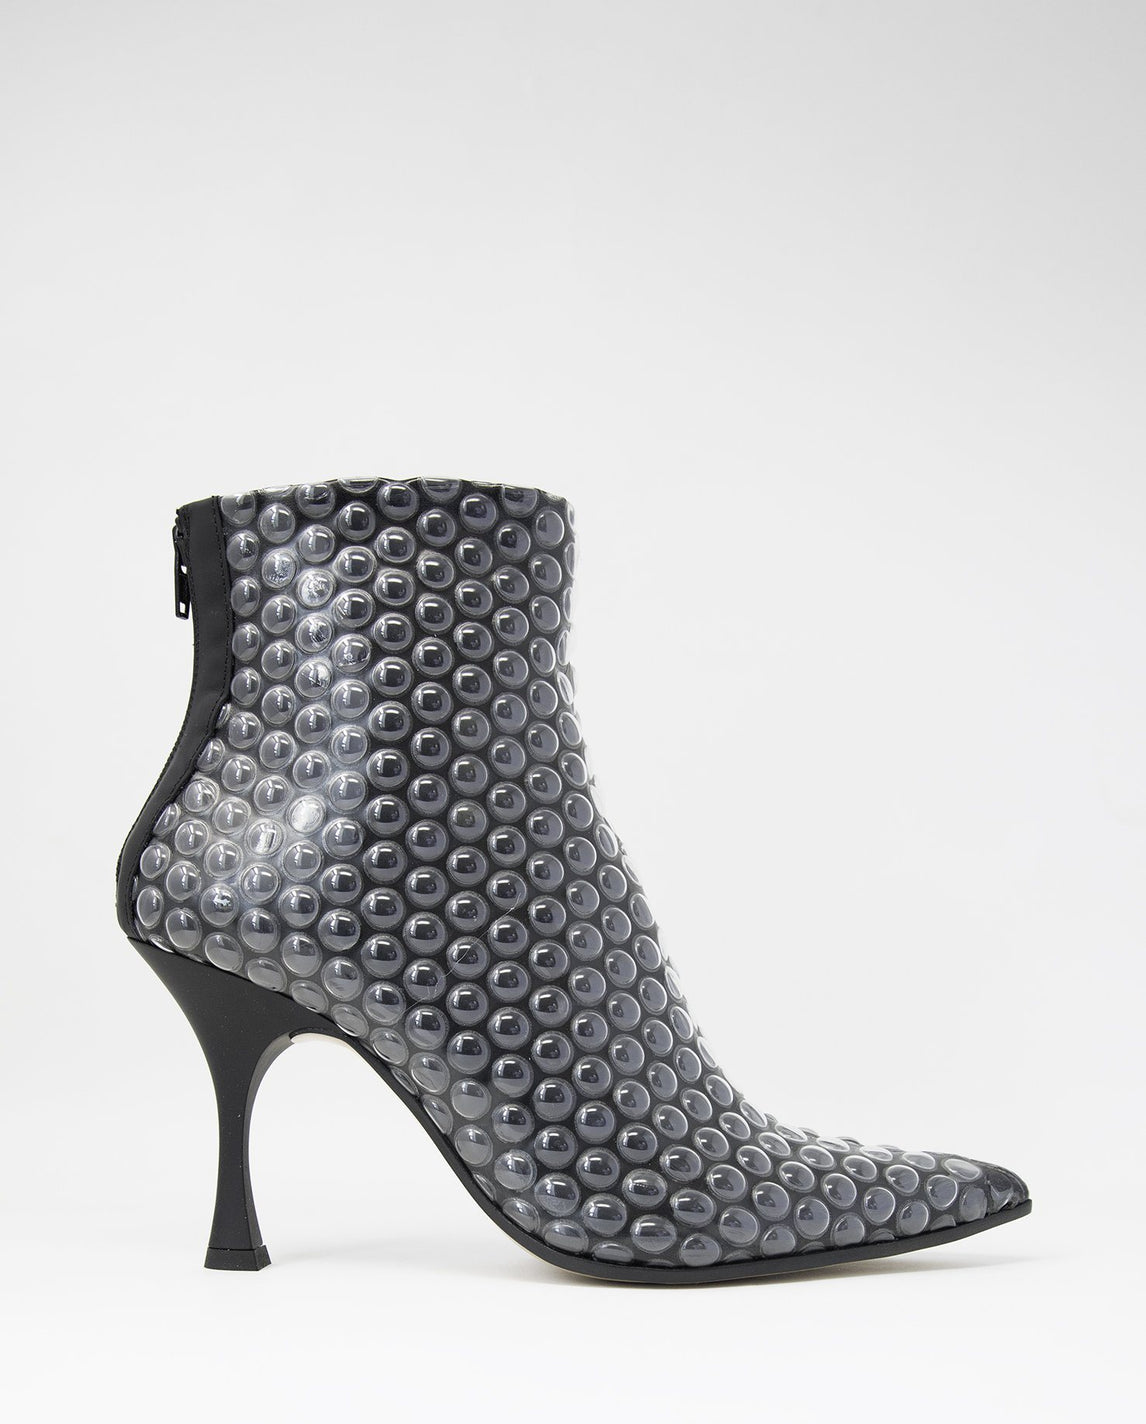 Bubble Wrap Ankle Boot - Black WOMENS MM6 MAISON MARGIELA